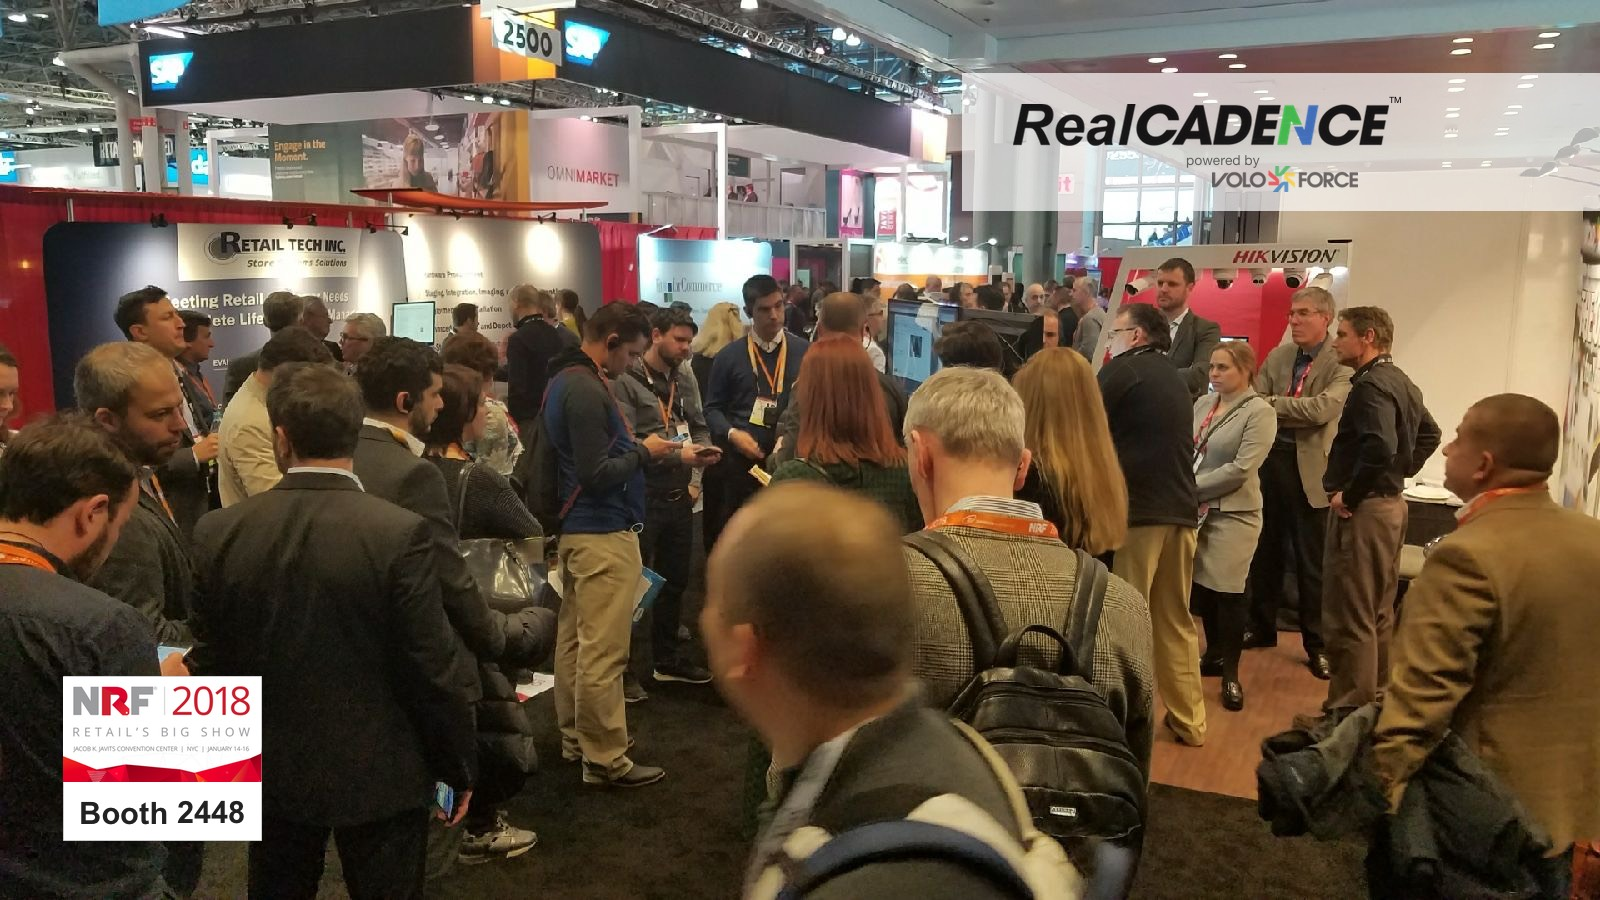 The RealCadence/Voloforce booth at the National Retail Federation (NRF) show 2018